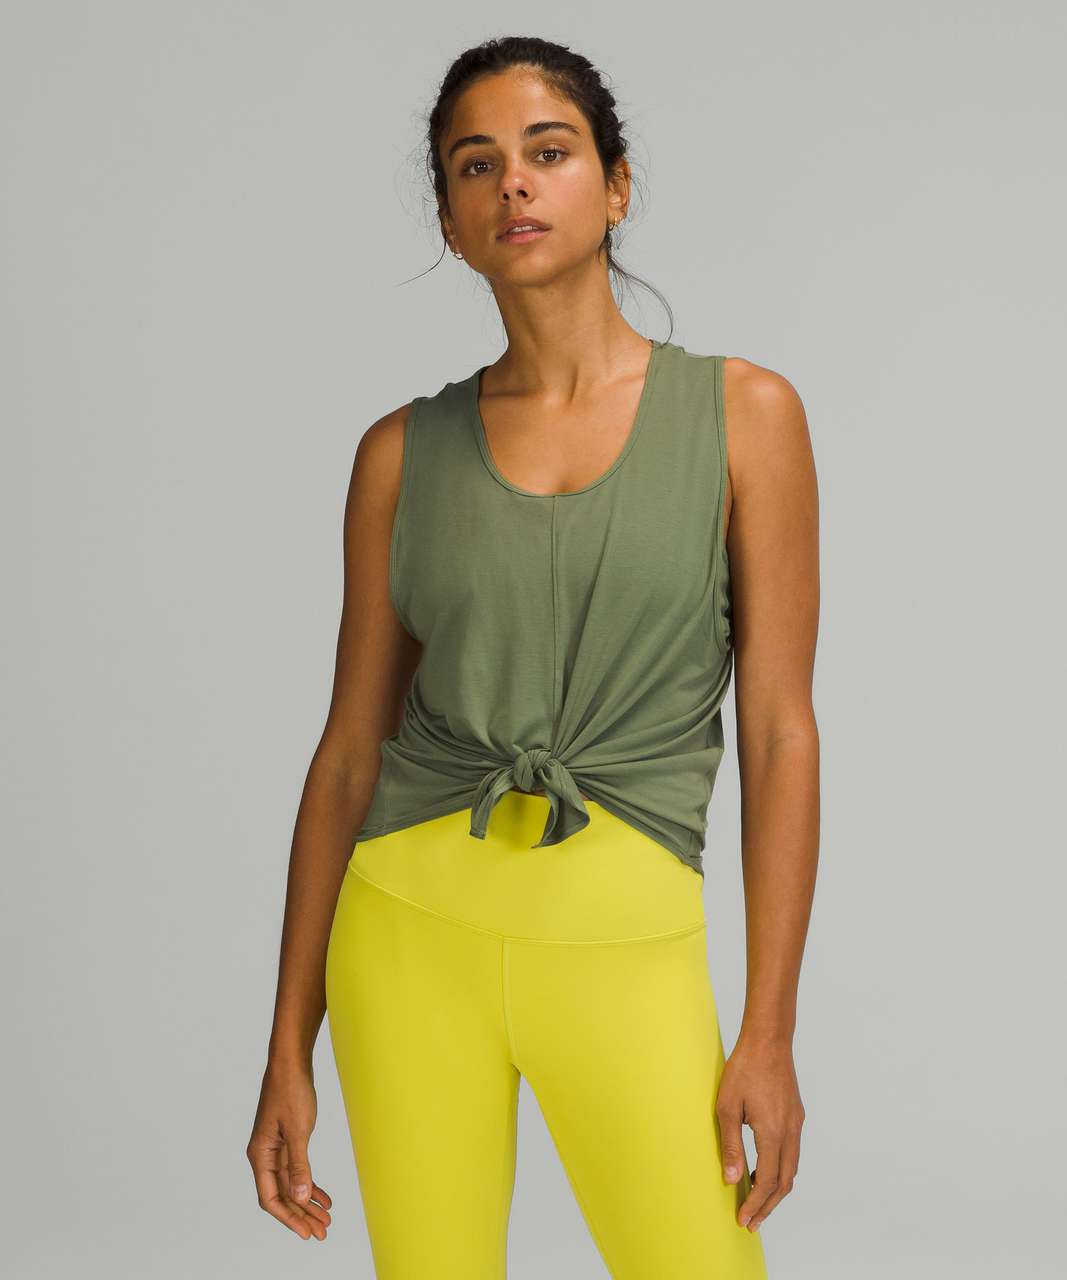 Lululemon Flow Y 2-in-1 Yoga Tank Top *Light Support, A–C Cups - Green Twill